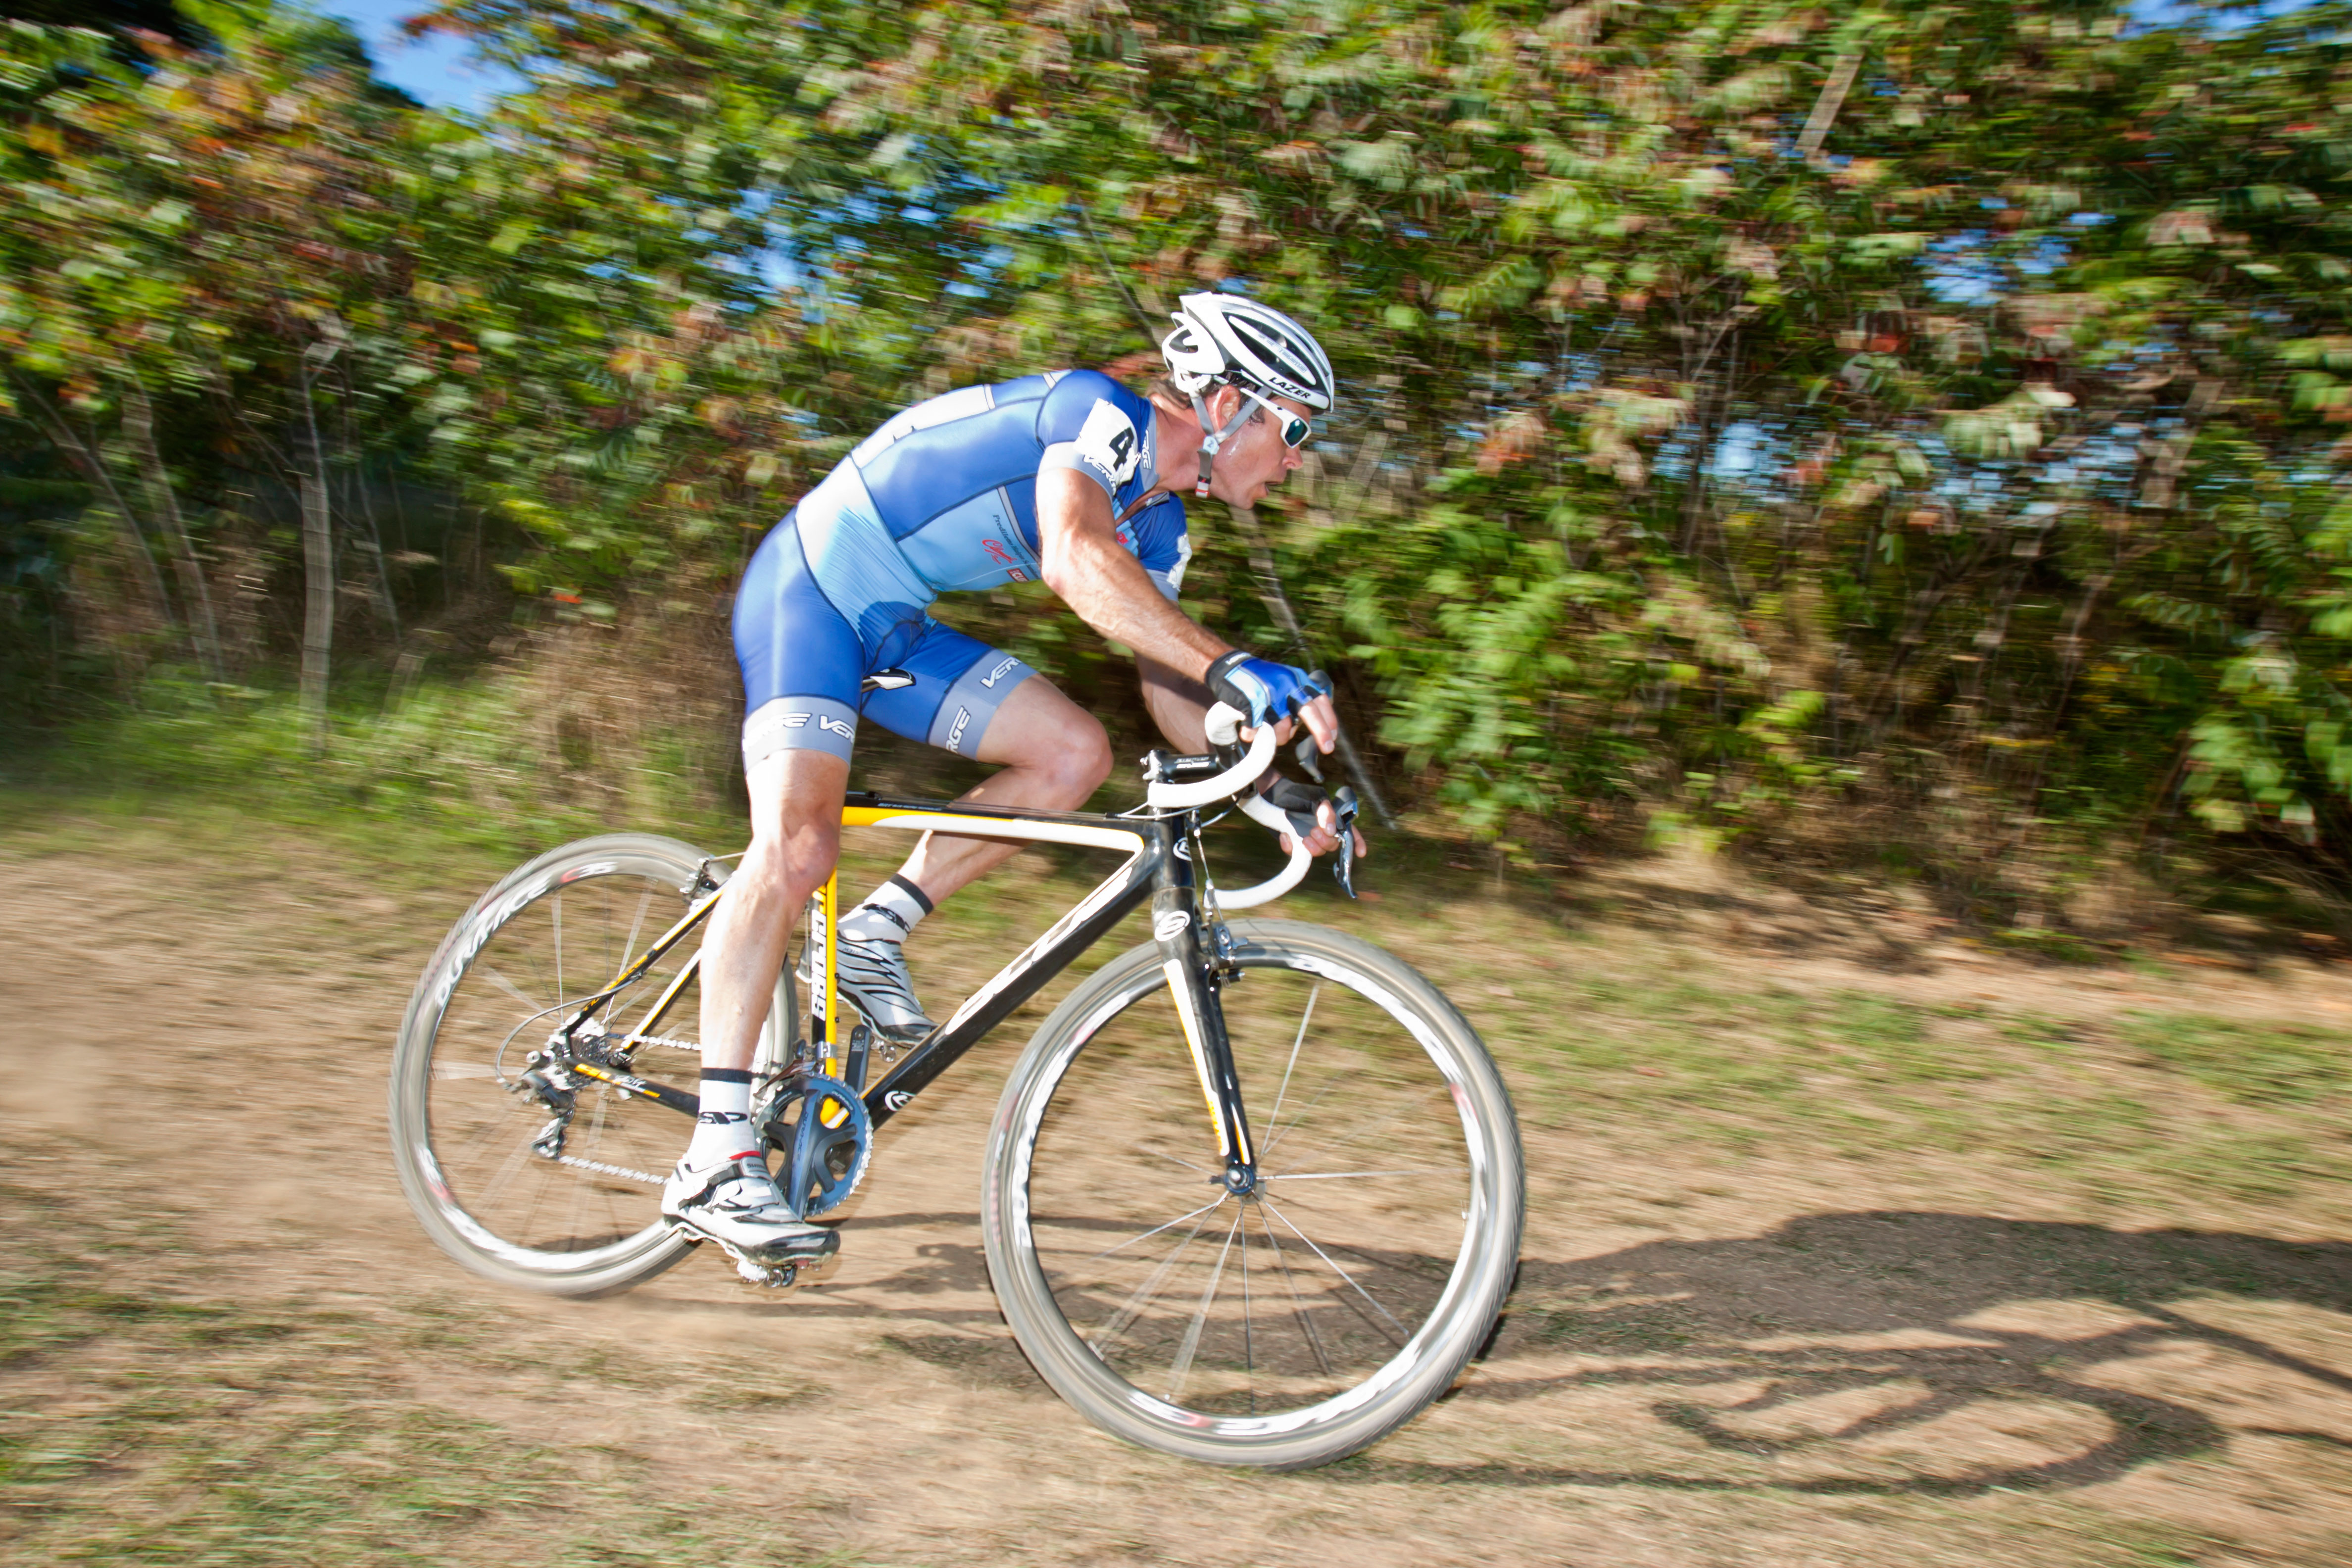 Jonathan Page at Green Mountain Cyclocross in Willison, VT. Photo: Nick Czerula.